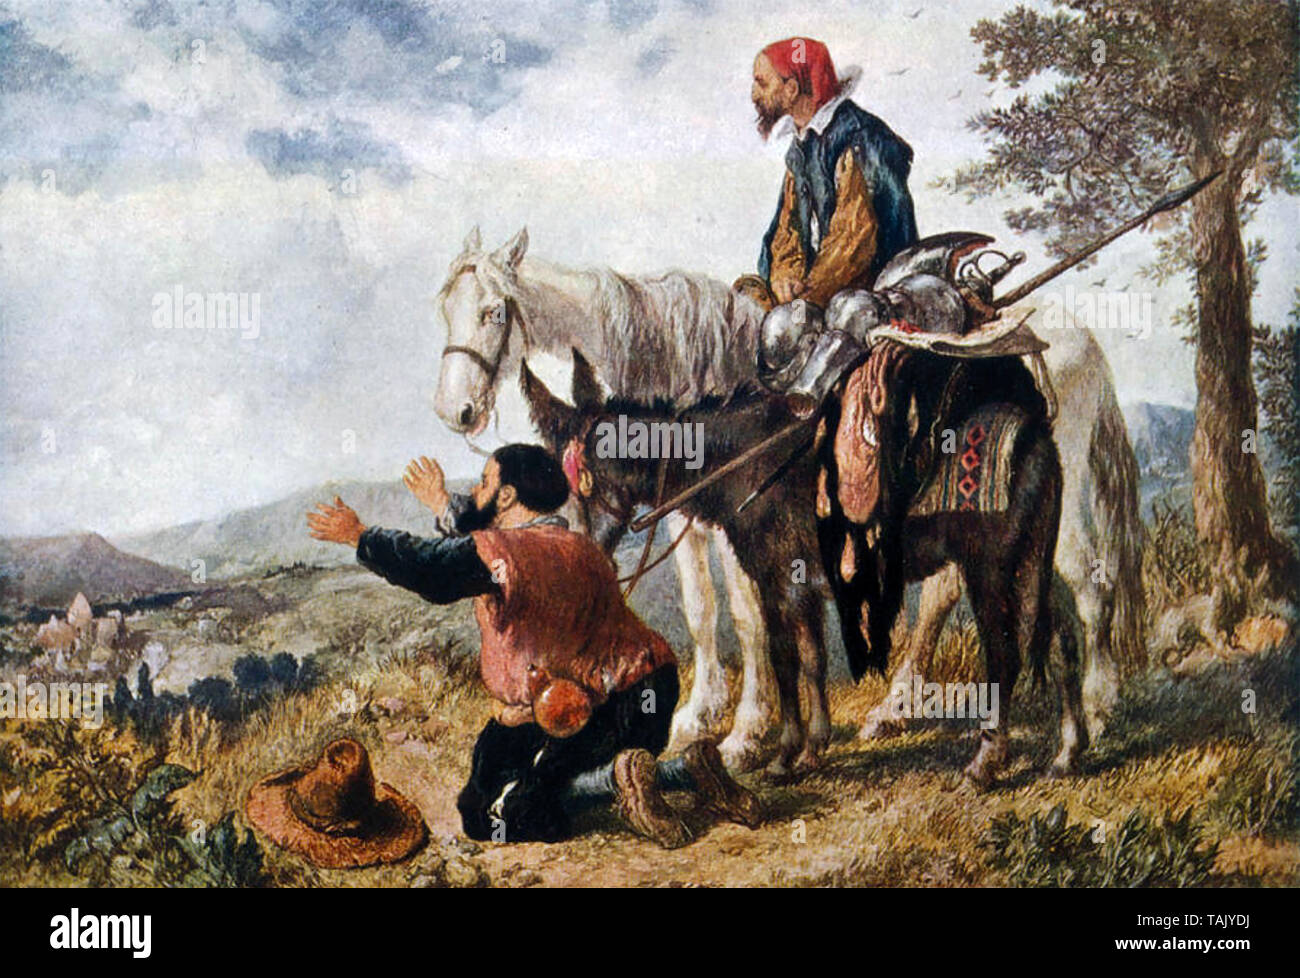 DON QUIXOTE and Sancho Panza return home in a scene from Cervantes 17th century novel - Stock Image